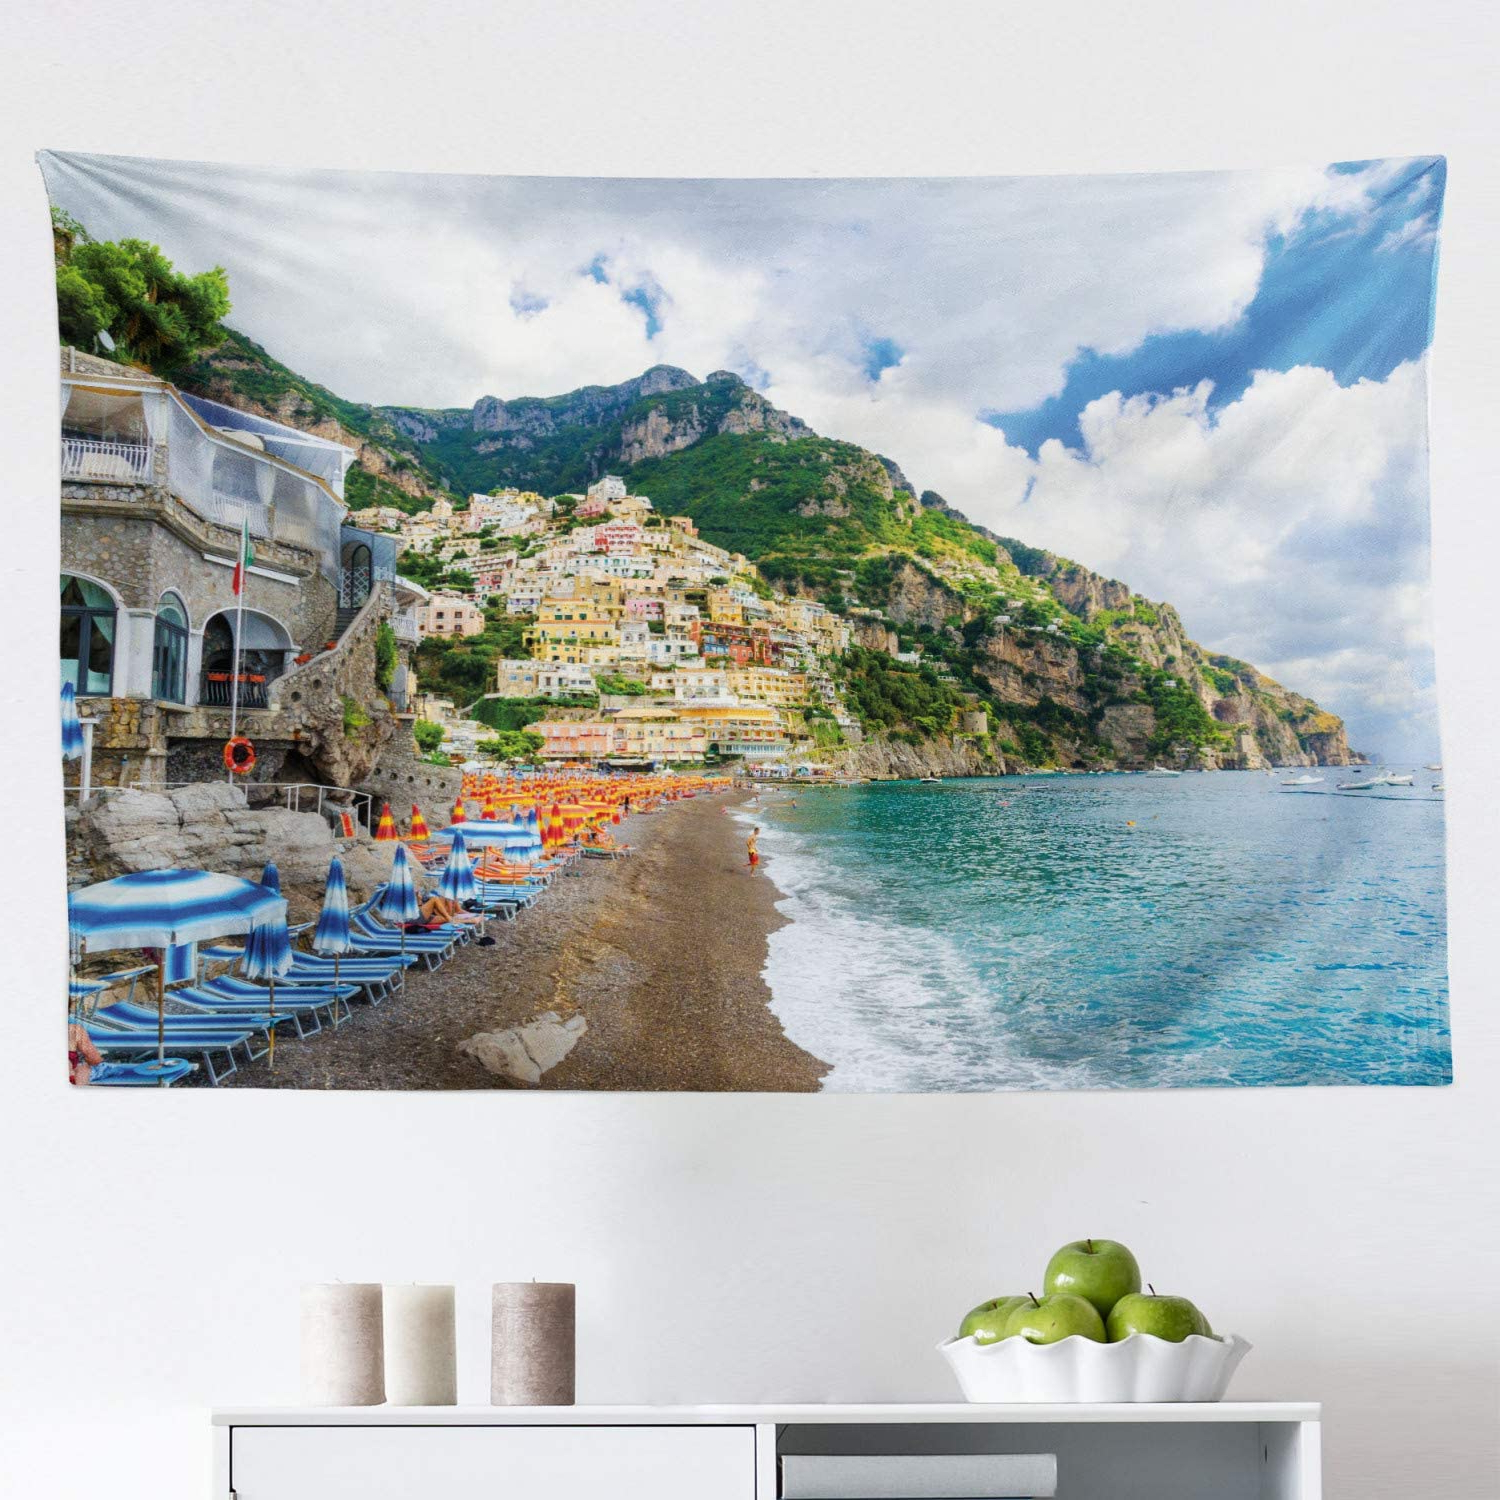 Blended Fabric Italian Wall Hangings Intended For Most Recently Released Amazon: Lunarable Amalfi Coast Tapestry, Sunbeds And (View 18 of 20)